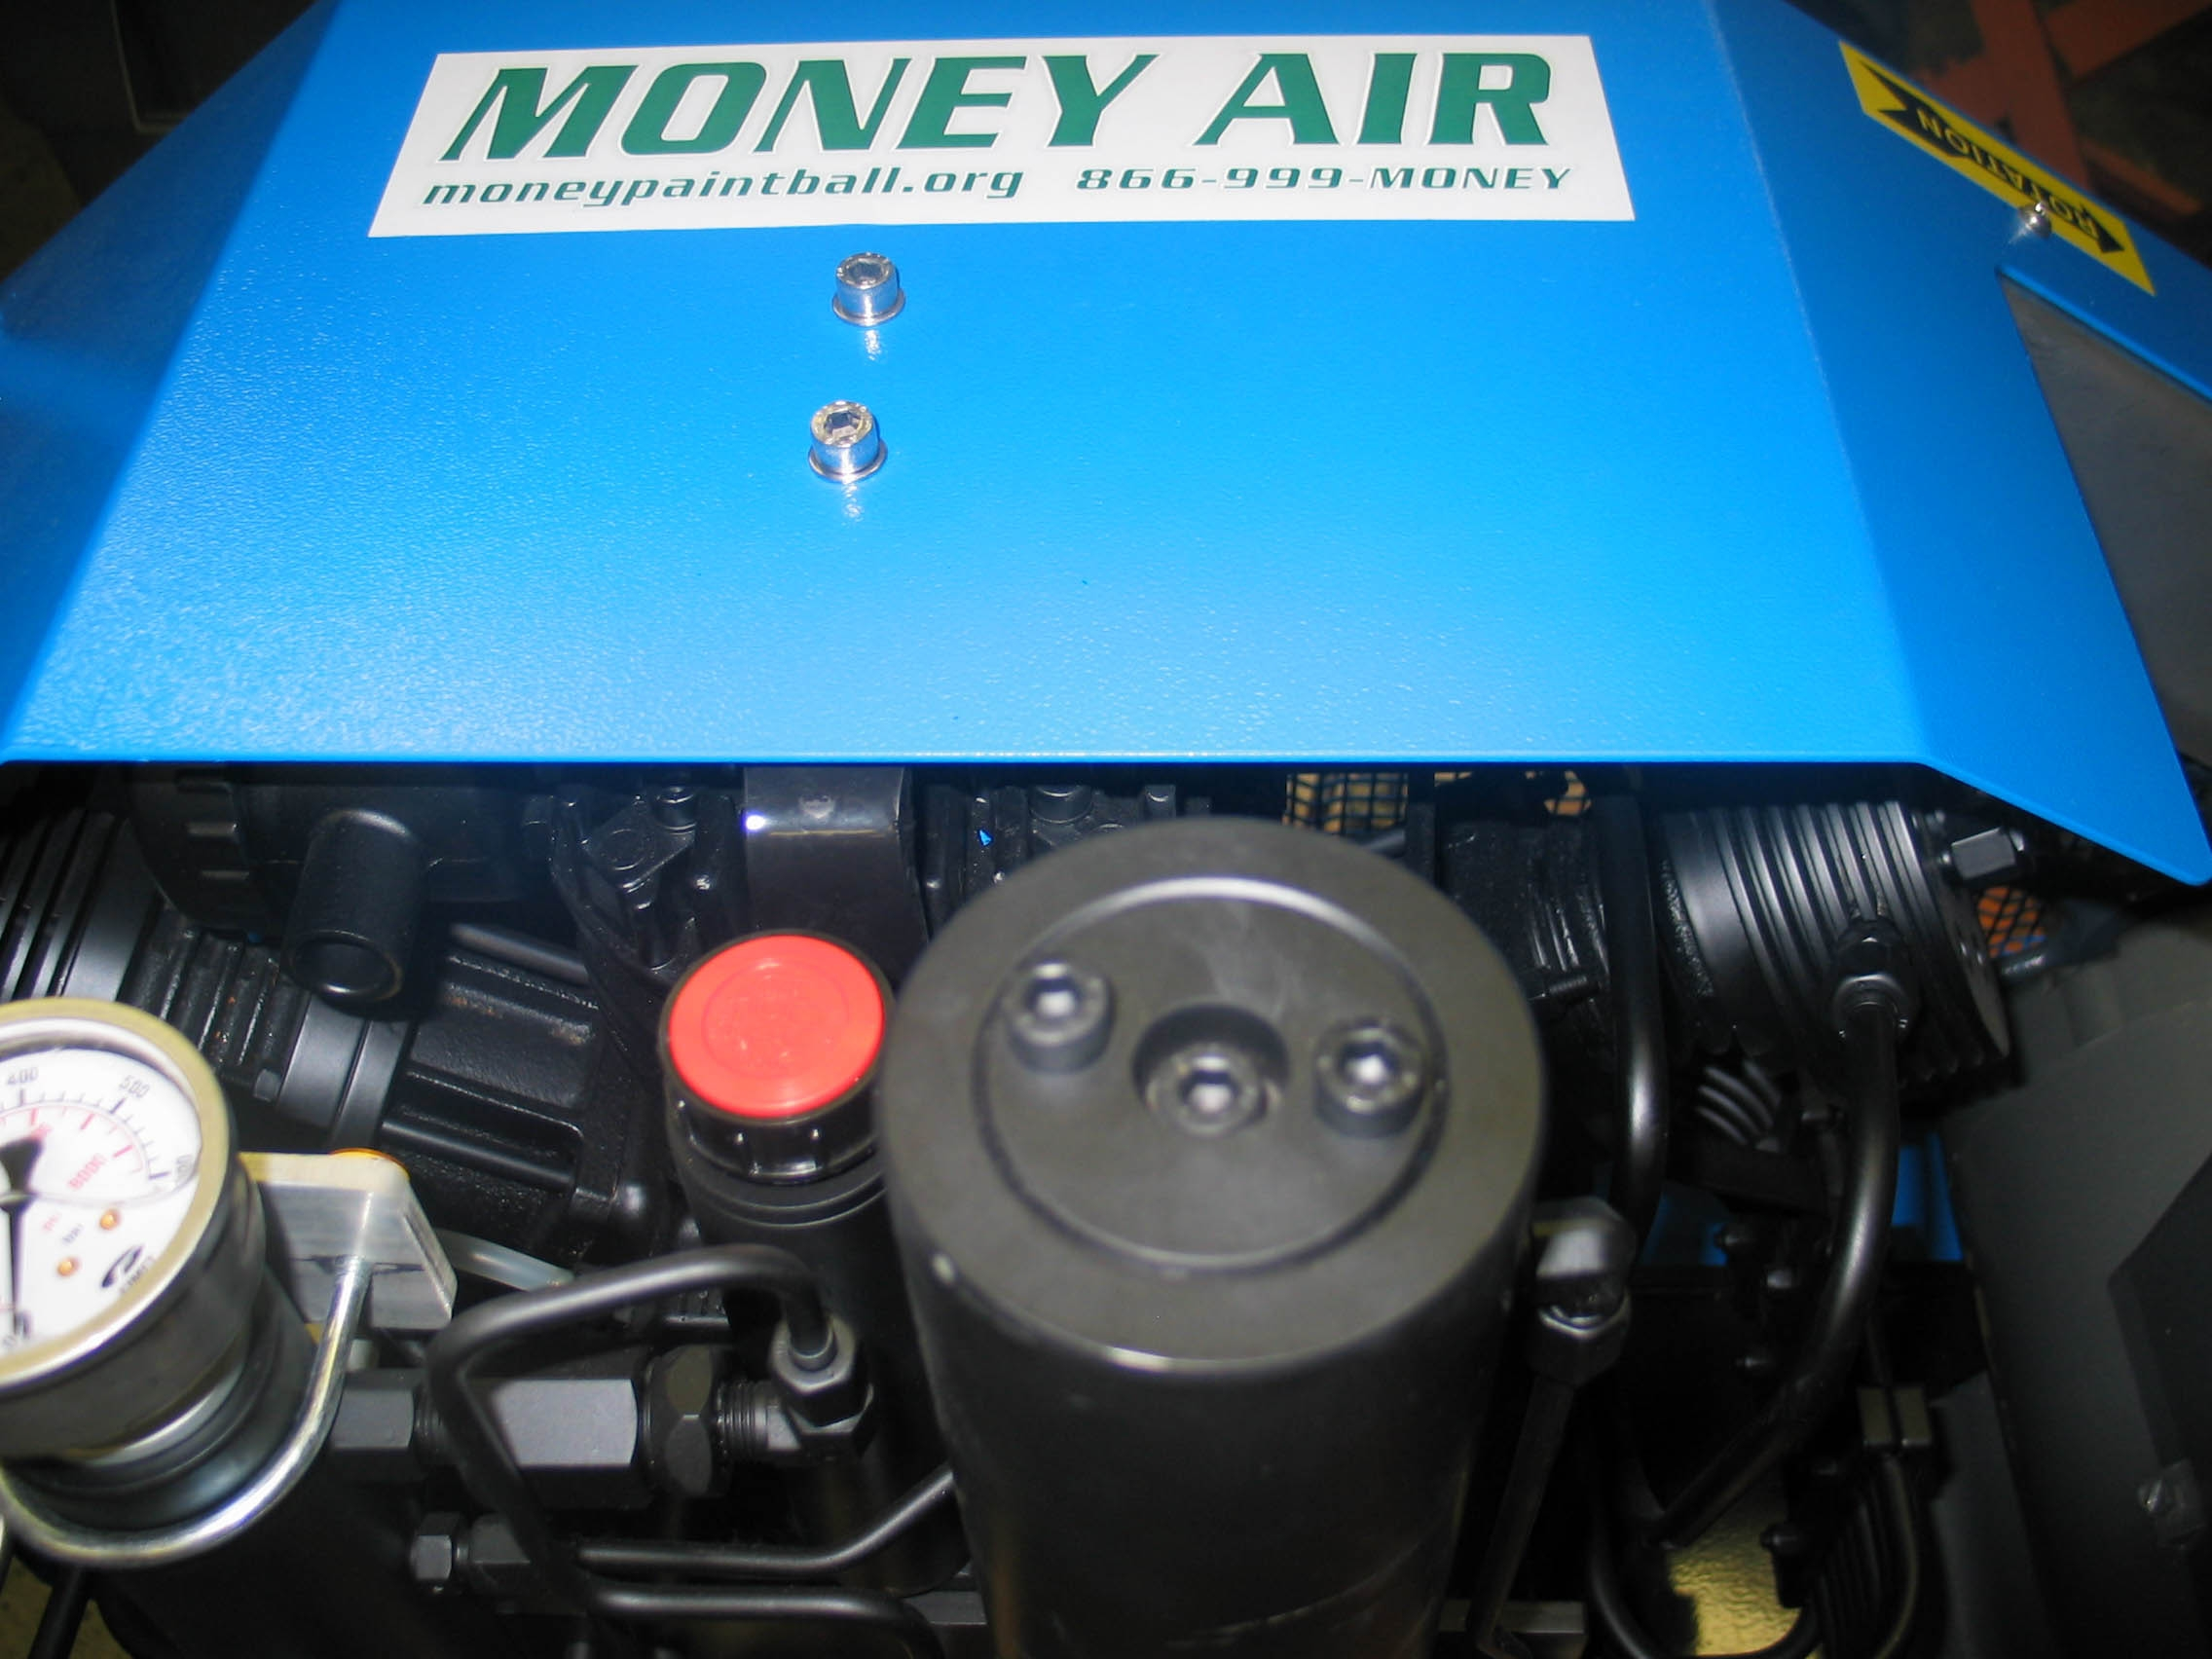 MONEY AIR 11 SCFM COMPRESSOR W/AUTO DRAINS, AUTO ON & OFF